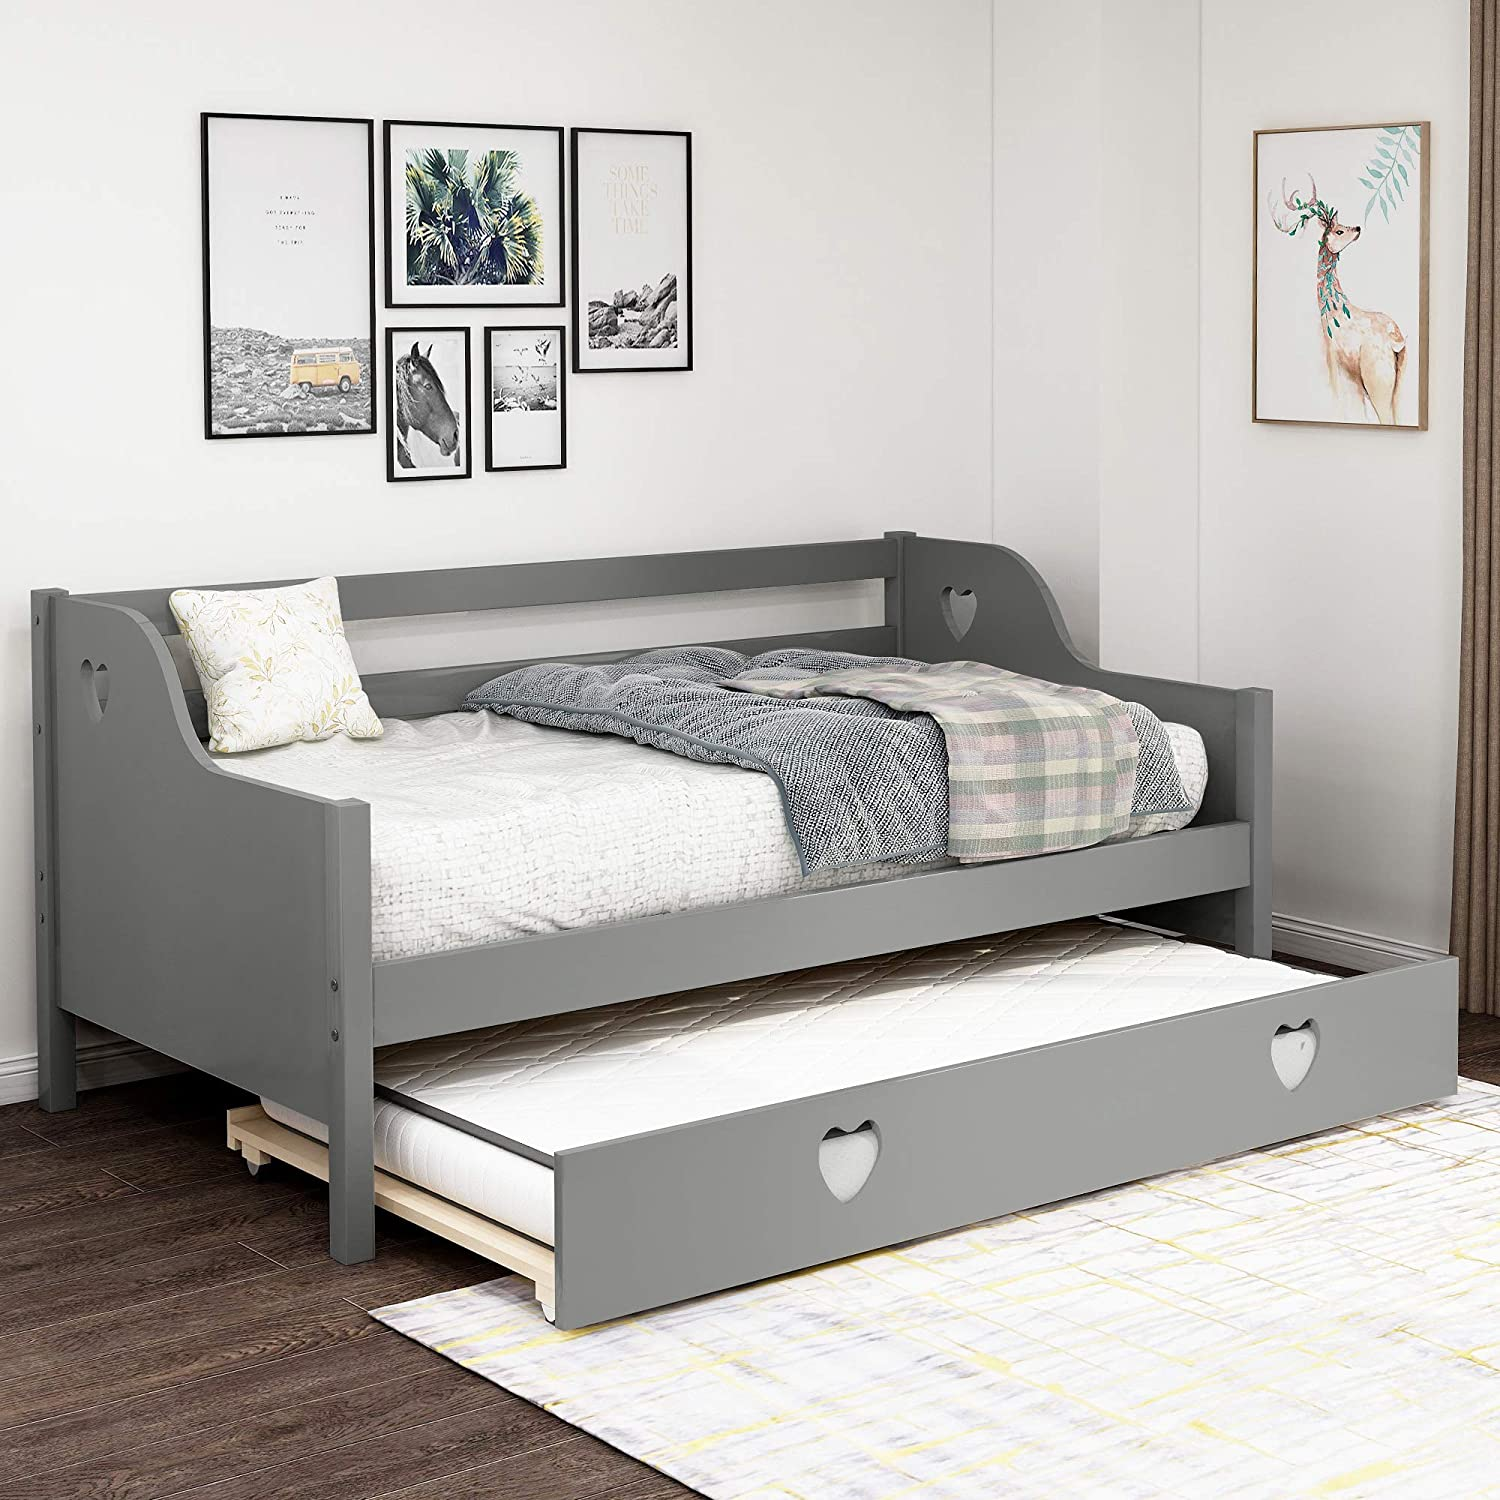 - Amazon.com: Twin Daybed, Daybed With Trundle And Rails Premium